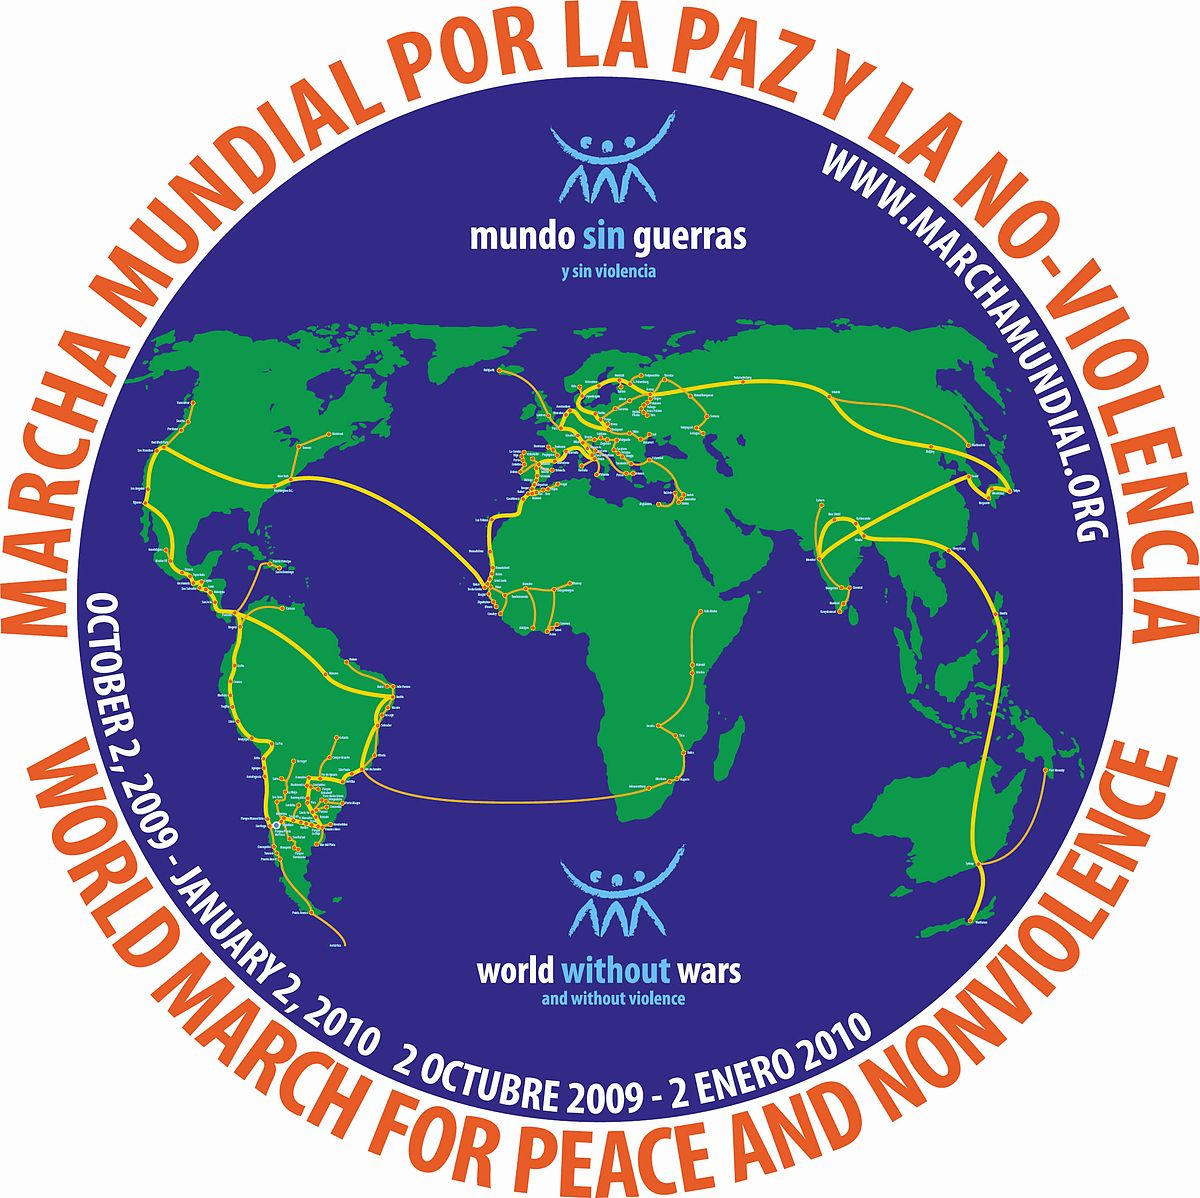 world peace and nonviolence Cnv: an overview build a culture of peace, mainstream nonviolence campaign nonviolence is a new, long-term movement to mainstream.